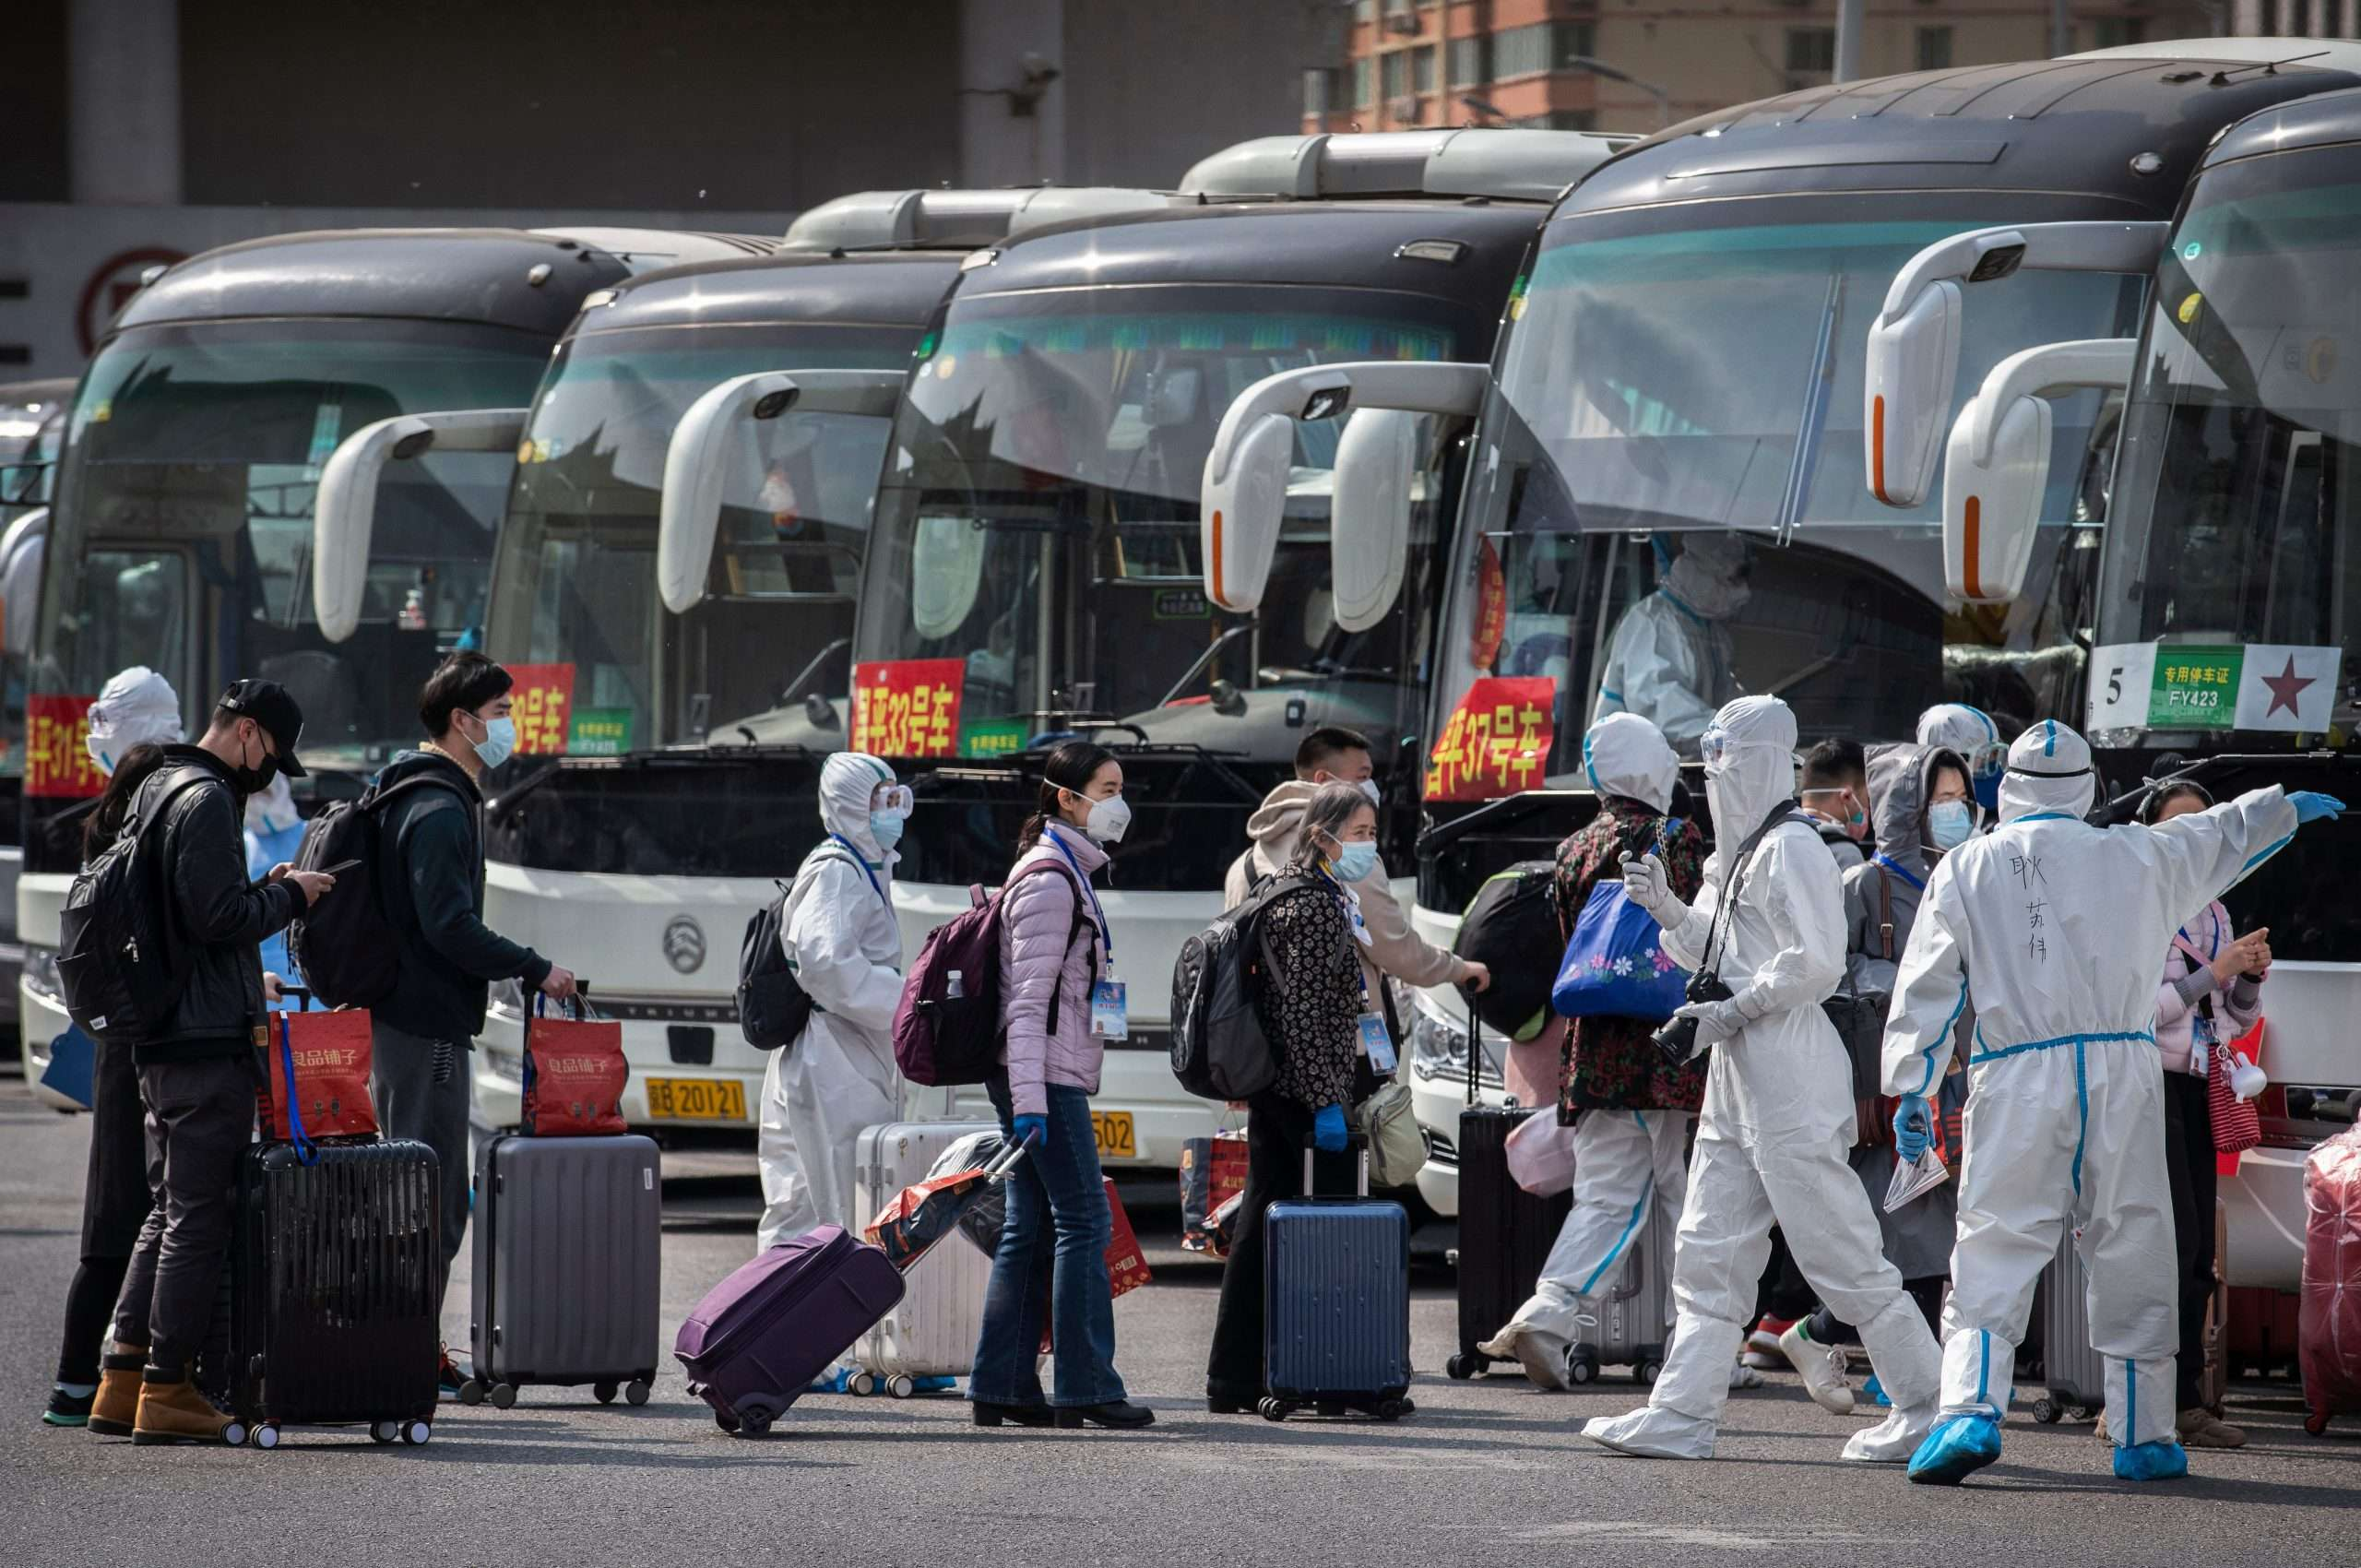 Chinese workers and health officials wear protective suits as travellers from Wuhan are processed after the central Chinese city lifted its lockdown on Wednesday. Credit: Kevin Frayer/Getty